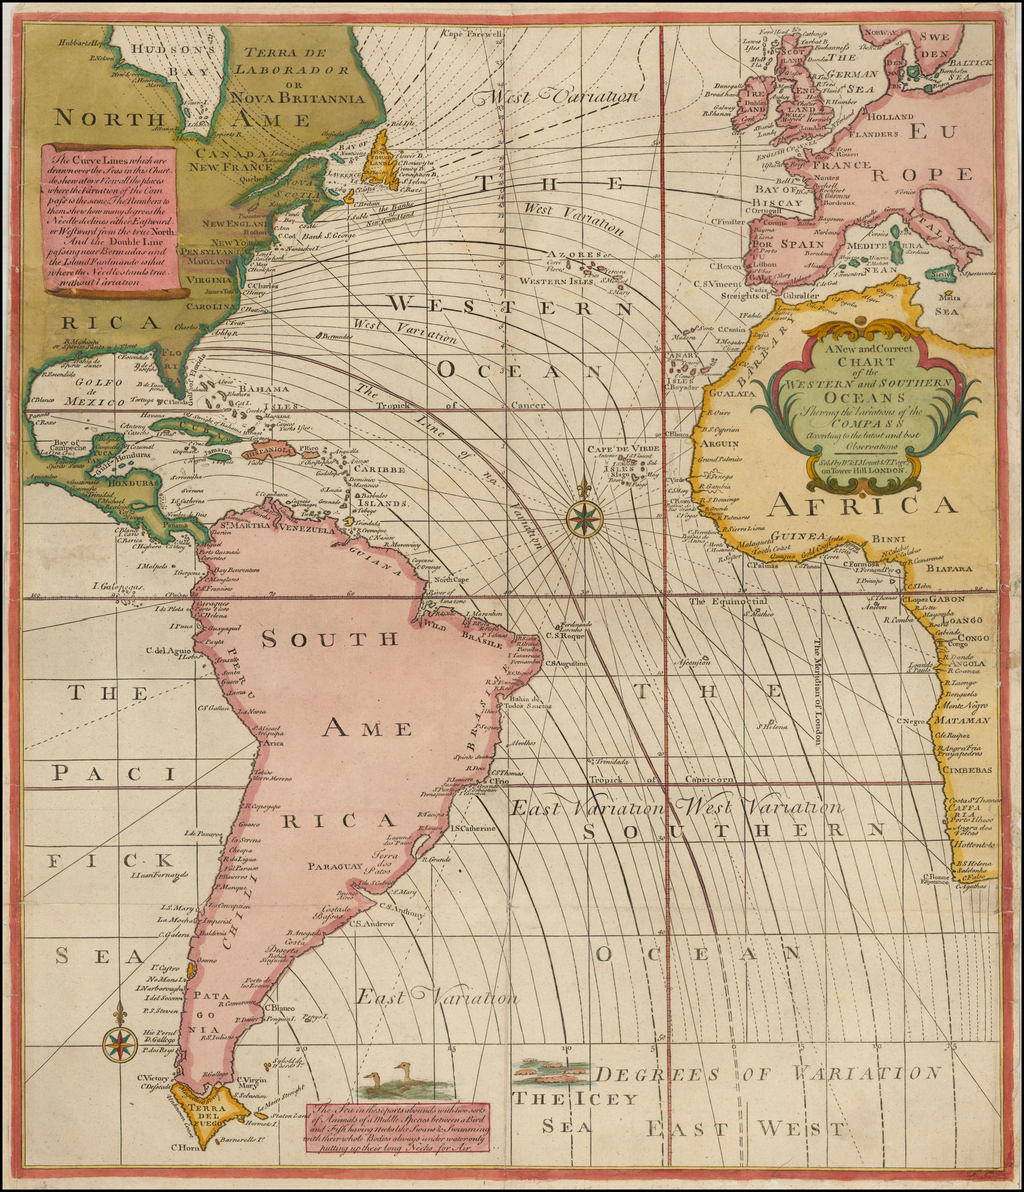 A New and Correct Chart of the Western and Southern Oceans Showing the Variations of the Compass According to the Latest and Best Observations By Mount & Page